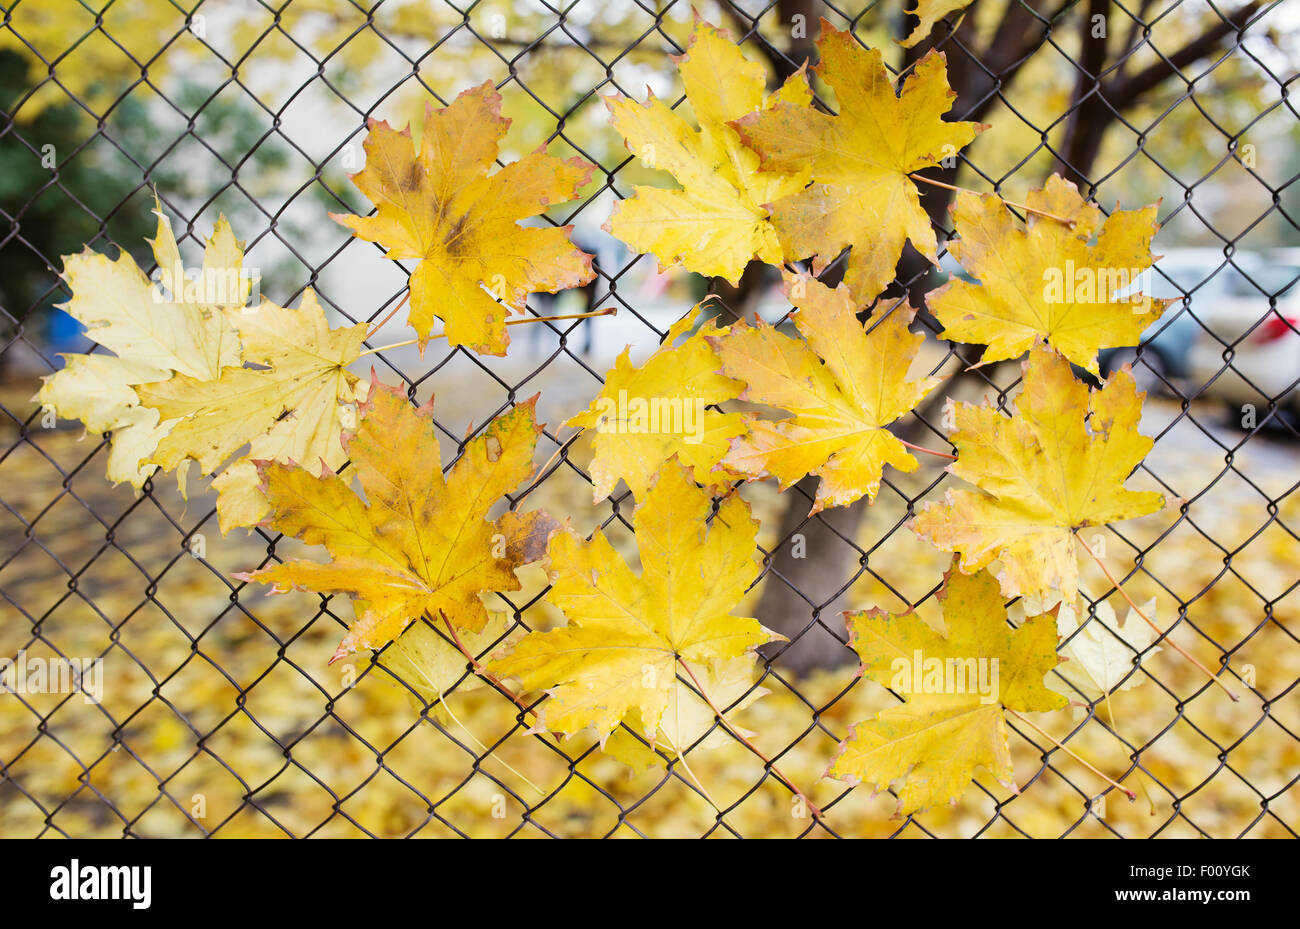 A fallen autumn leaves caught on a wire fence Stock Photo, Royalty ...